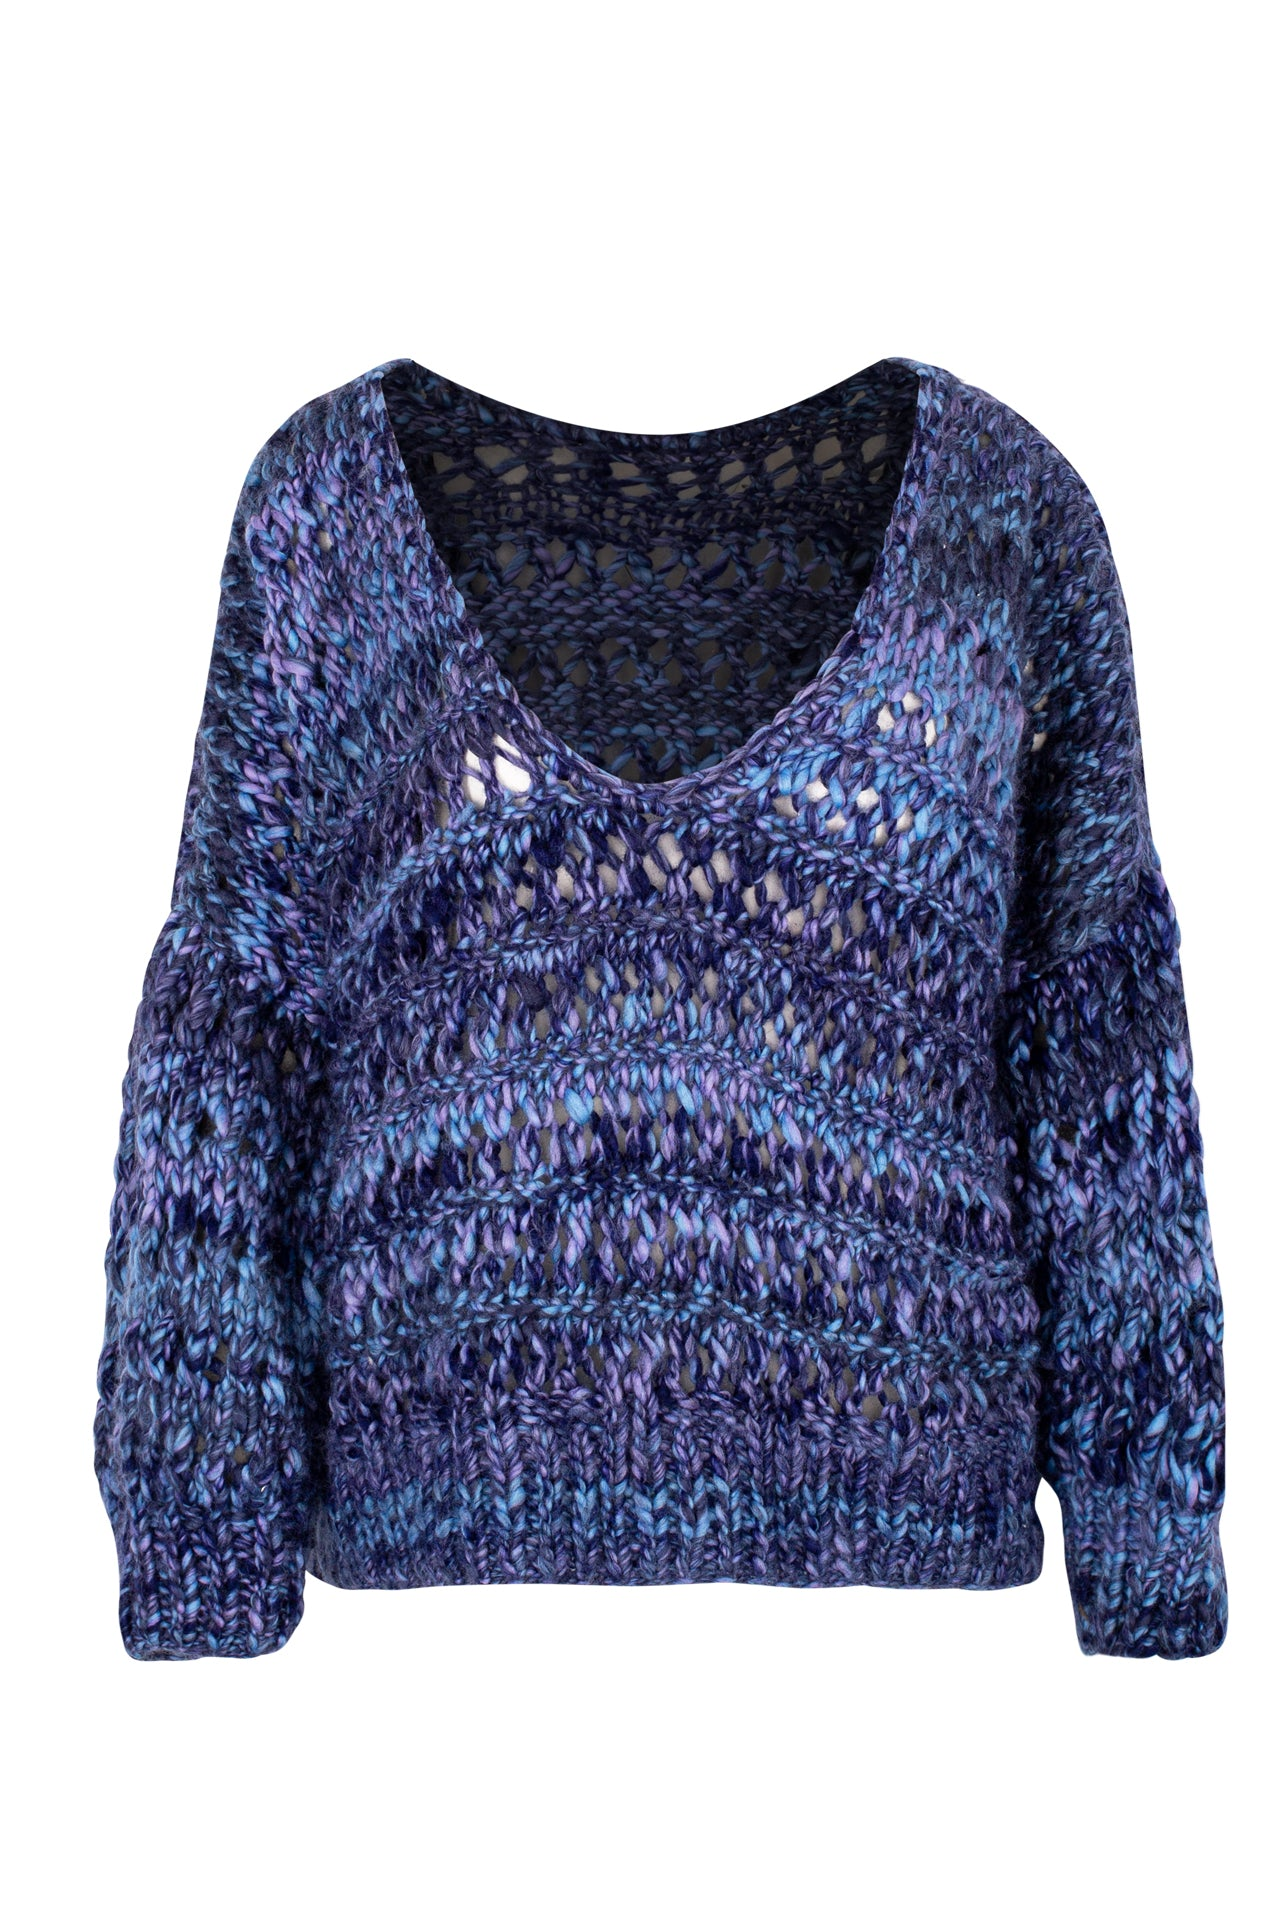 Morca Sweater